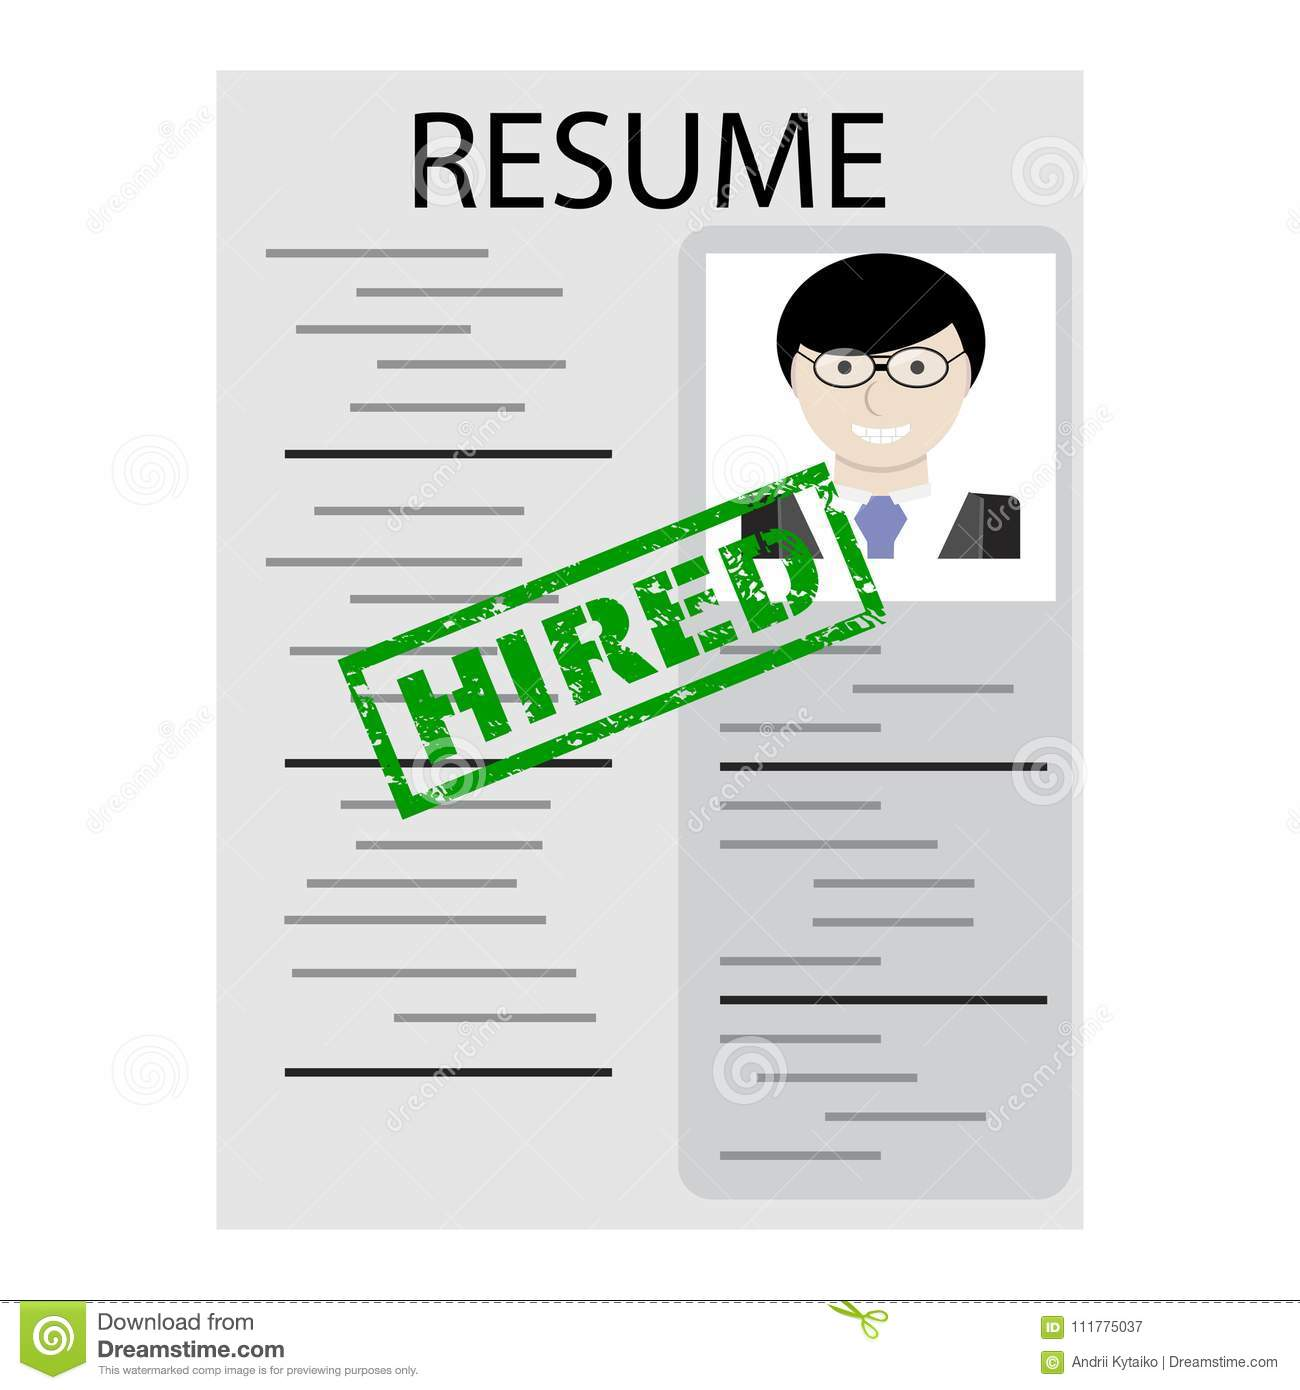 Resume with stamp hired